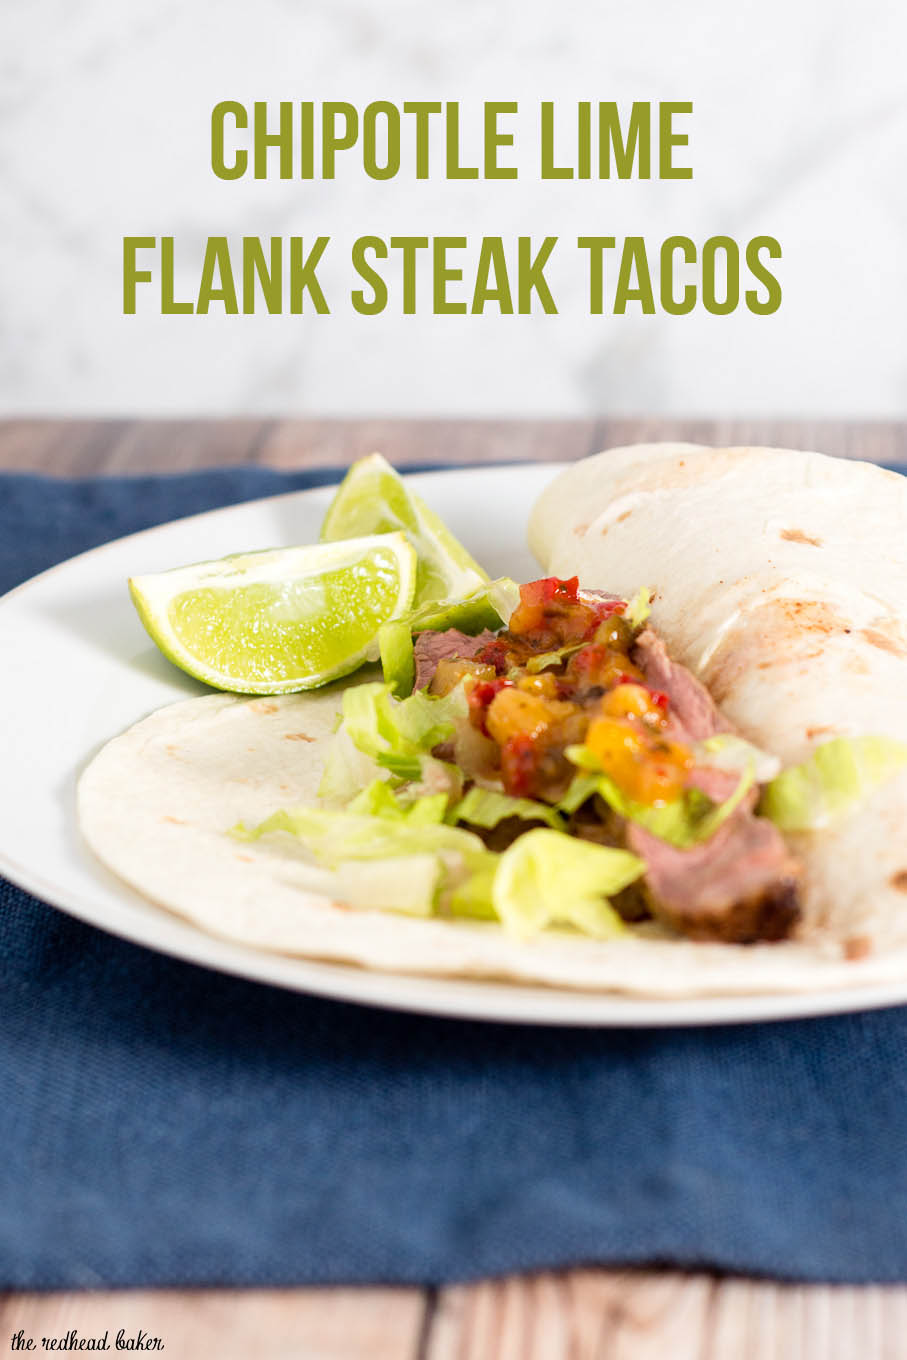 Flank steak tacos use a lean cut of beef, tenderized with a chile-lime marinade, as taco filling in soft tortillas, topped with shredded lettuce and pineapple salsa. #SundaySupper